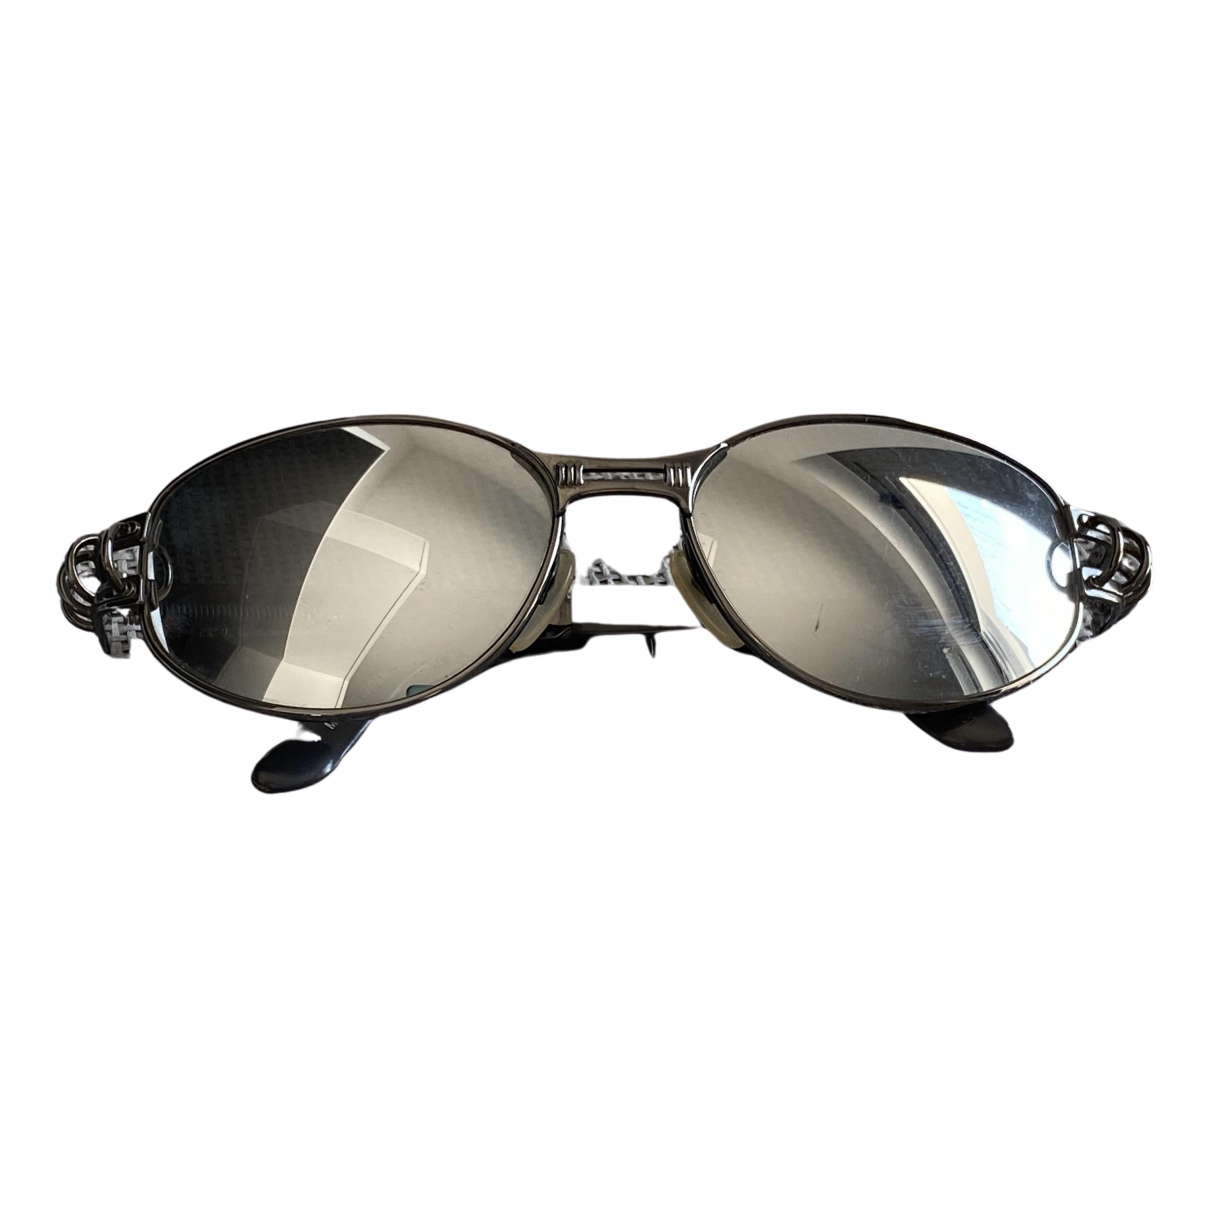 Jean Paul Gaultier N Grey Metal Sunglasses for Men N